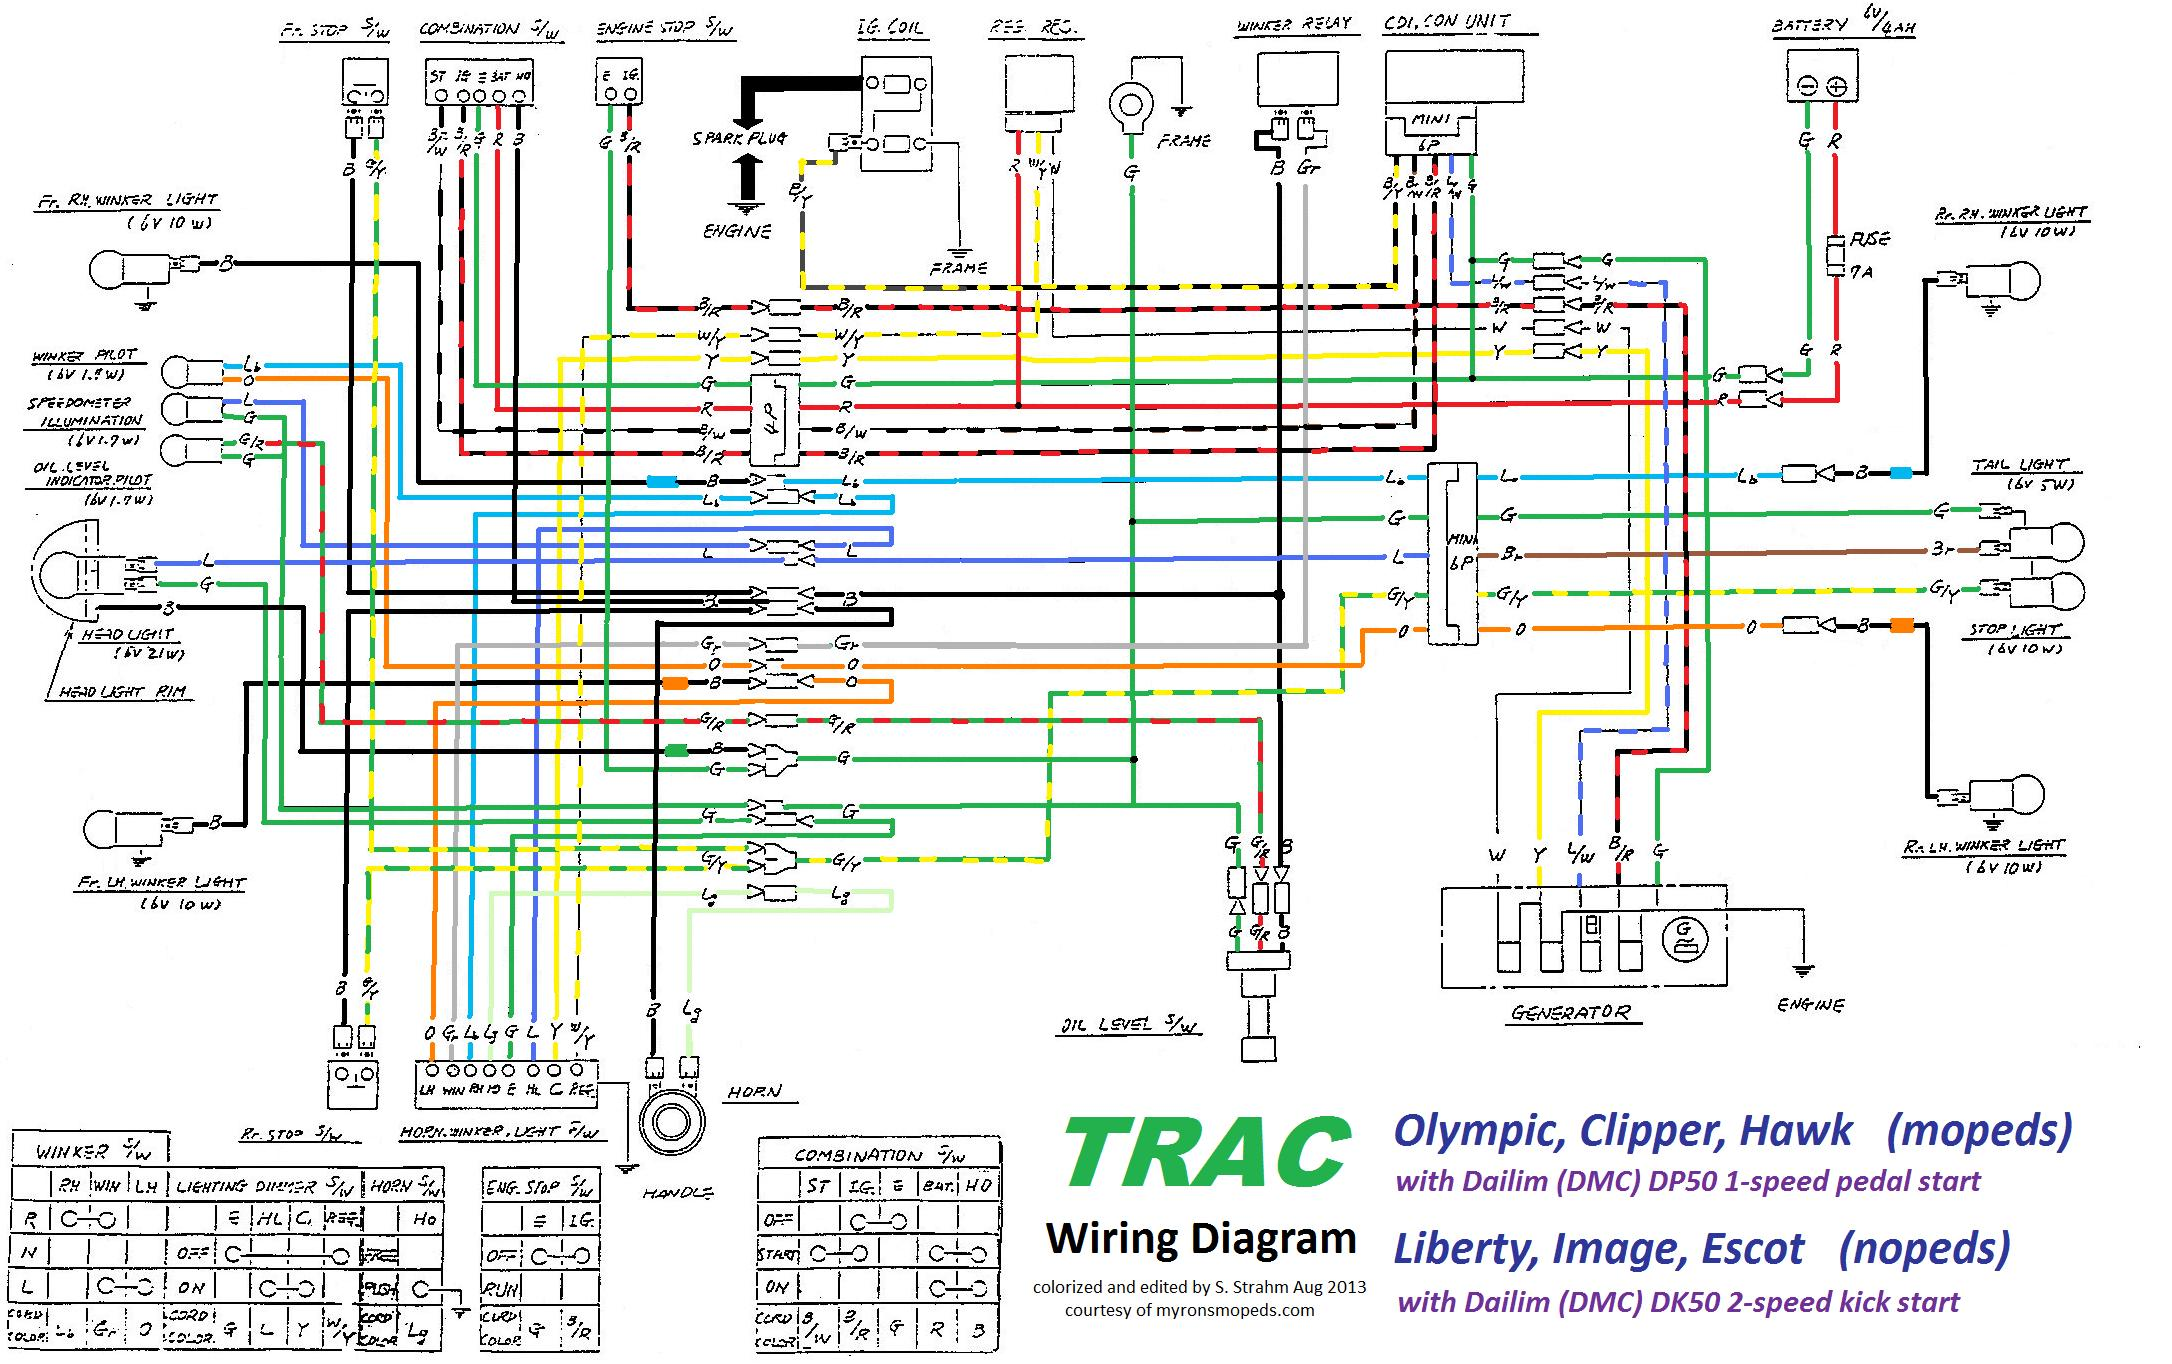 Army Signal Diagram Trusted Wiring How To Wire Turn Signals Trac Clipper Headlight Blinks With By Mrarcade Moped Rh Mopedarmy Com Chevy Flasher